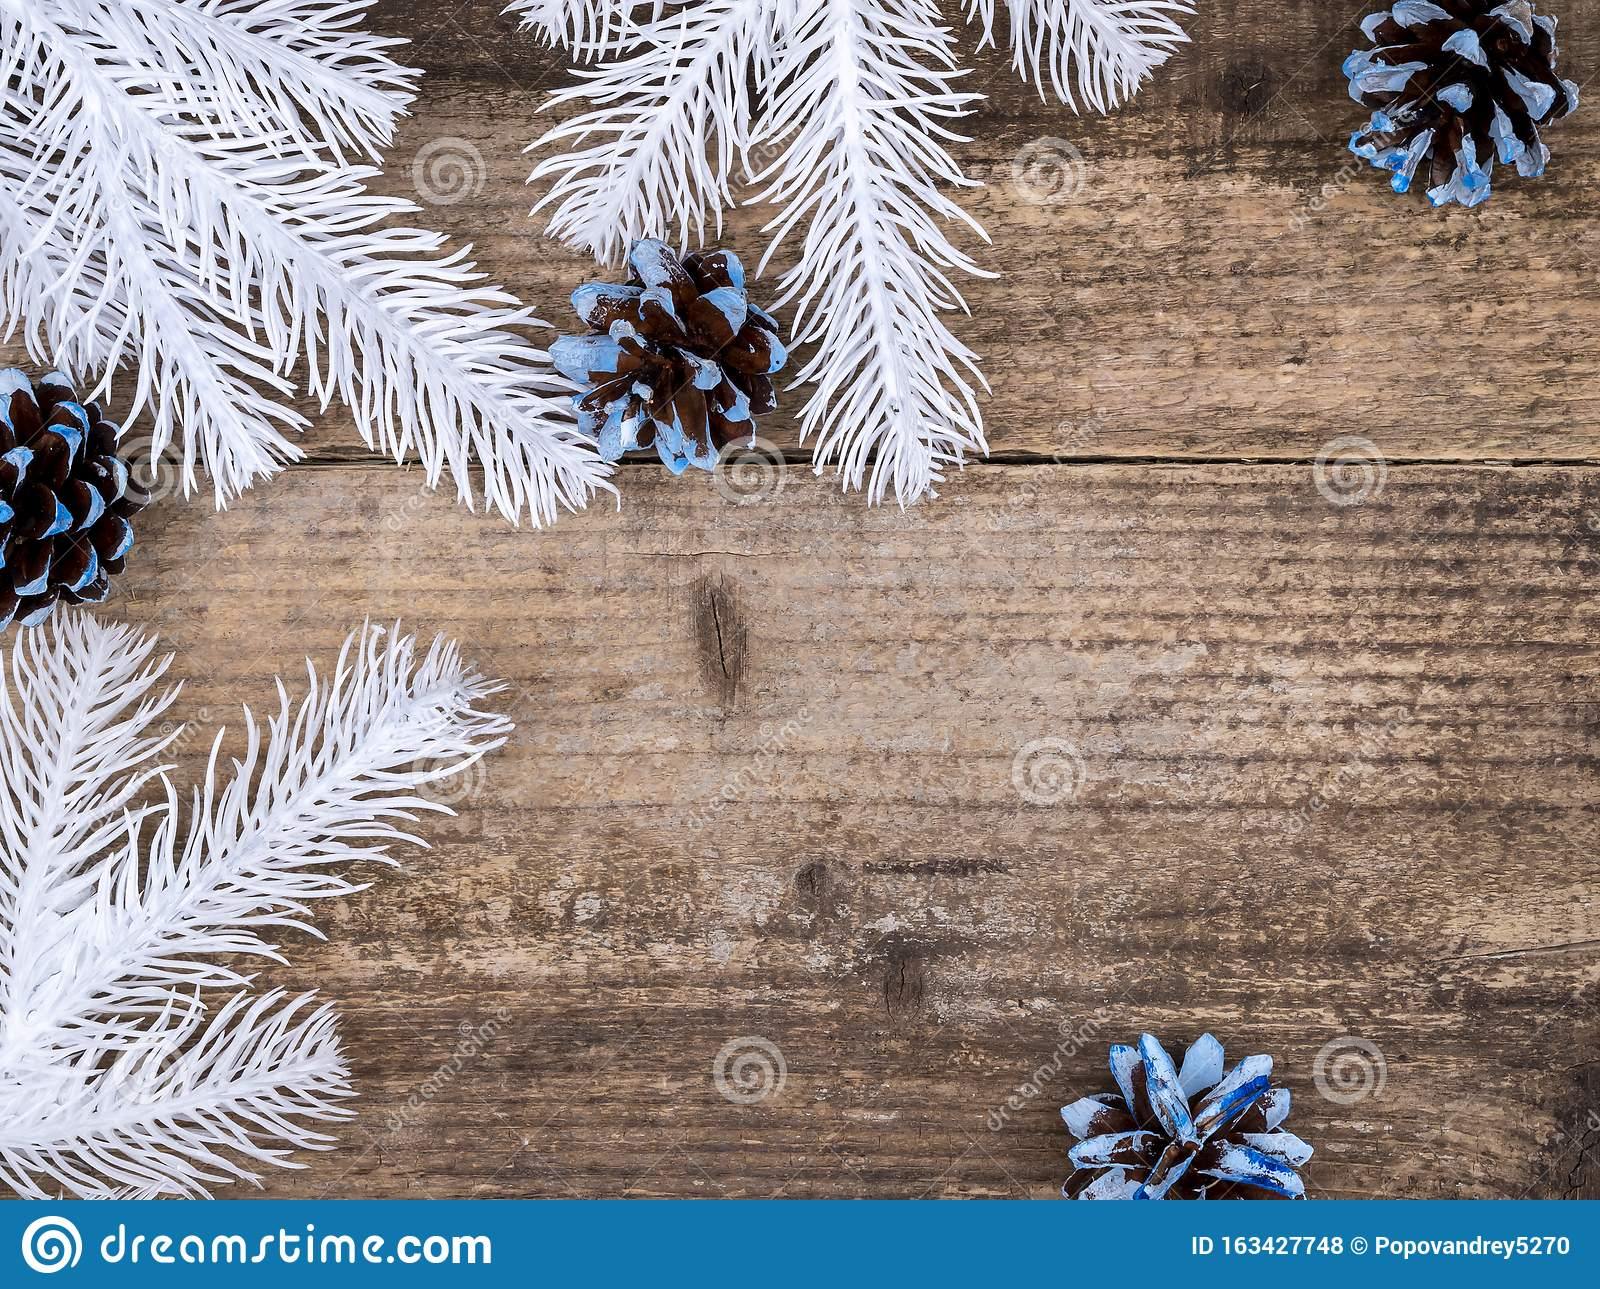 White Christmas Tree Branches And Blue Cones Stock Photo Image Of Prickly Decor 163427748